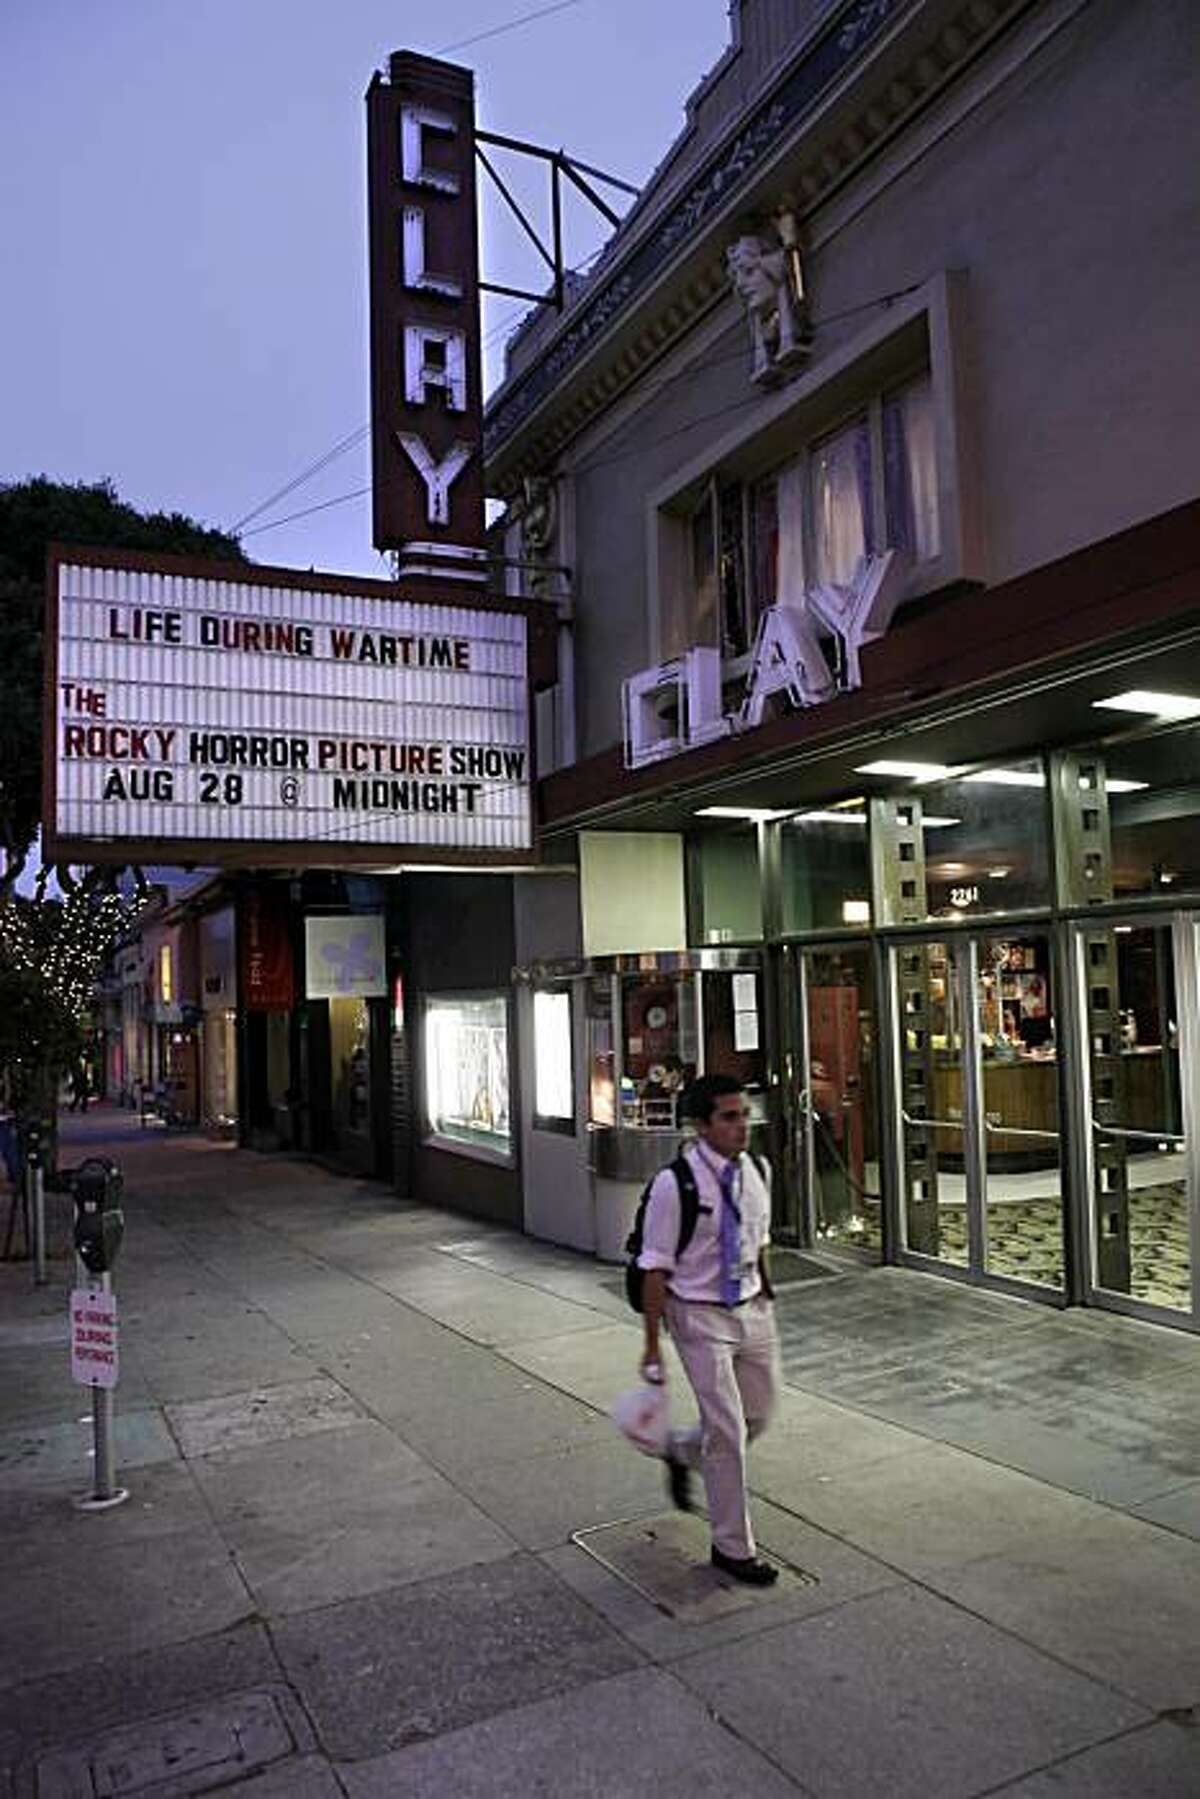 The Clay Theater on Fillmore Street in San Francisco, Calif., seen here on Wednesday, August 18, 2010, is scheduled to shut down at the end of August. It is one of the last single screen theaters in the city.